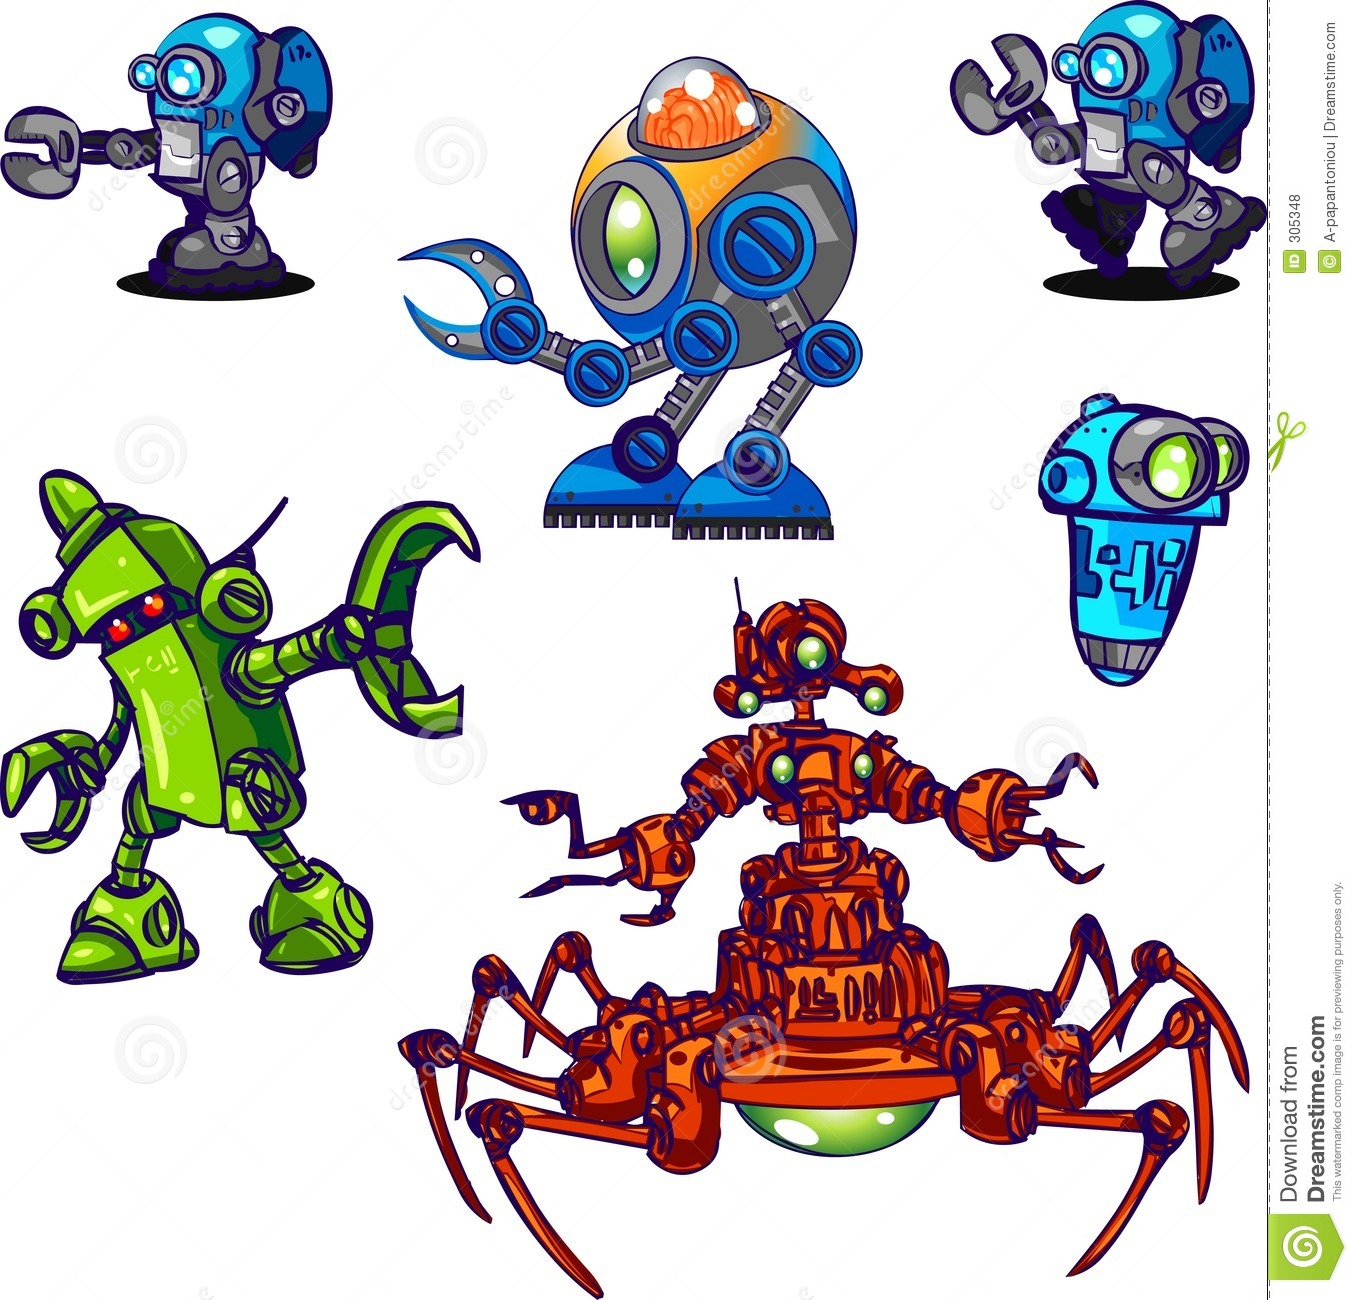 Character Design From The Ground Up Download : Character design collection robots stock illustration